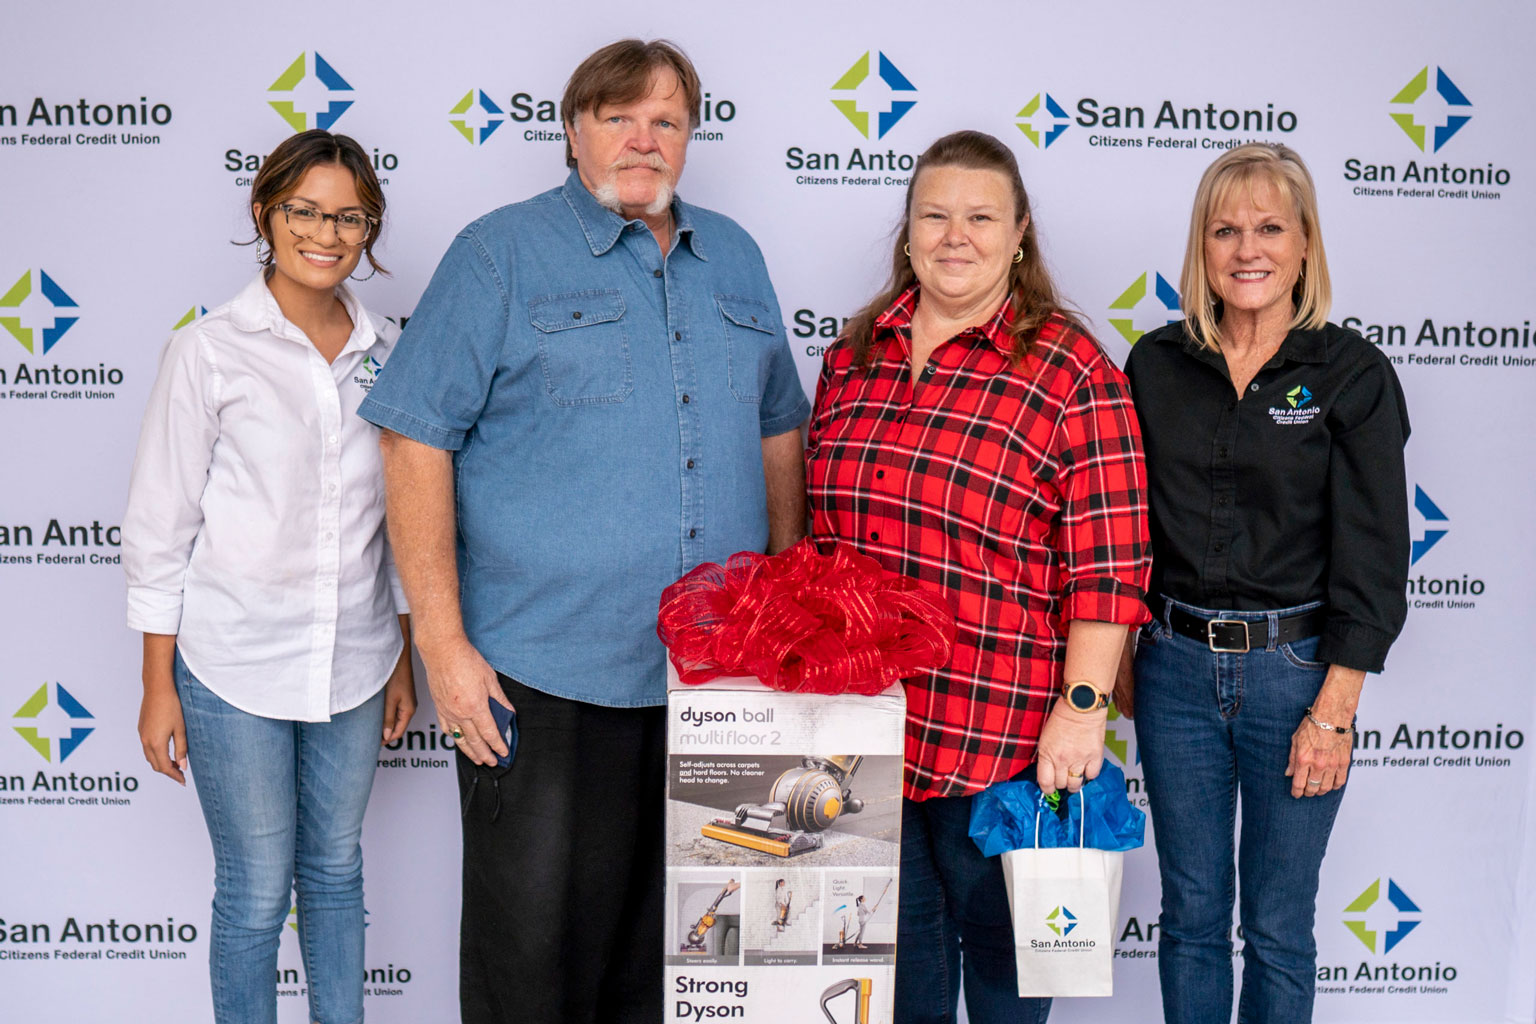 Two SACFCU employees giving a prize of a Dyson Vacuum to the winner of our Bill Pay contest.